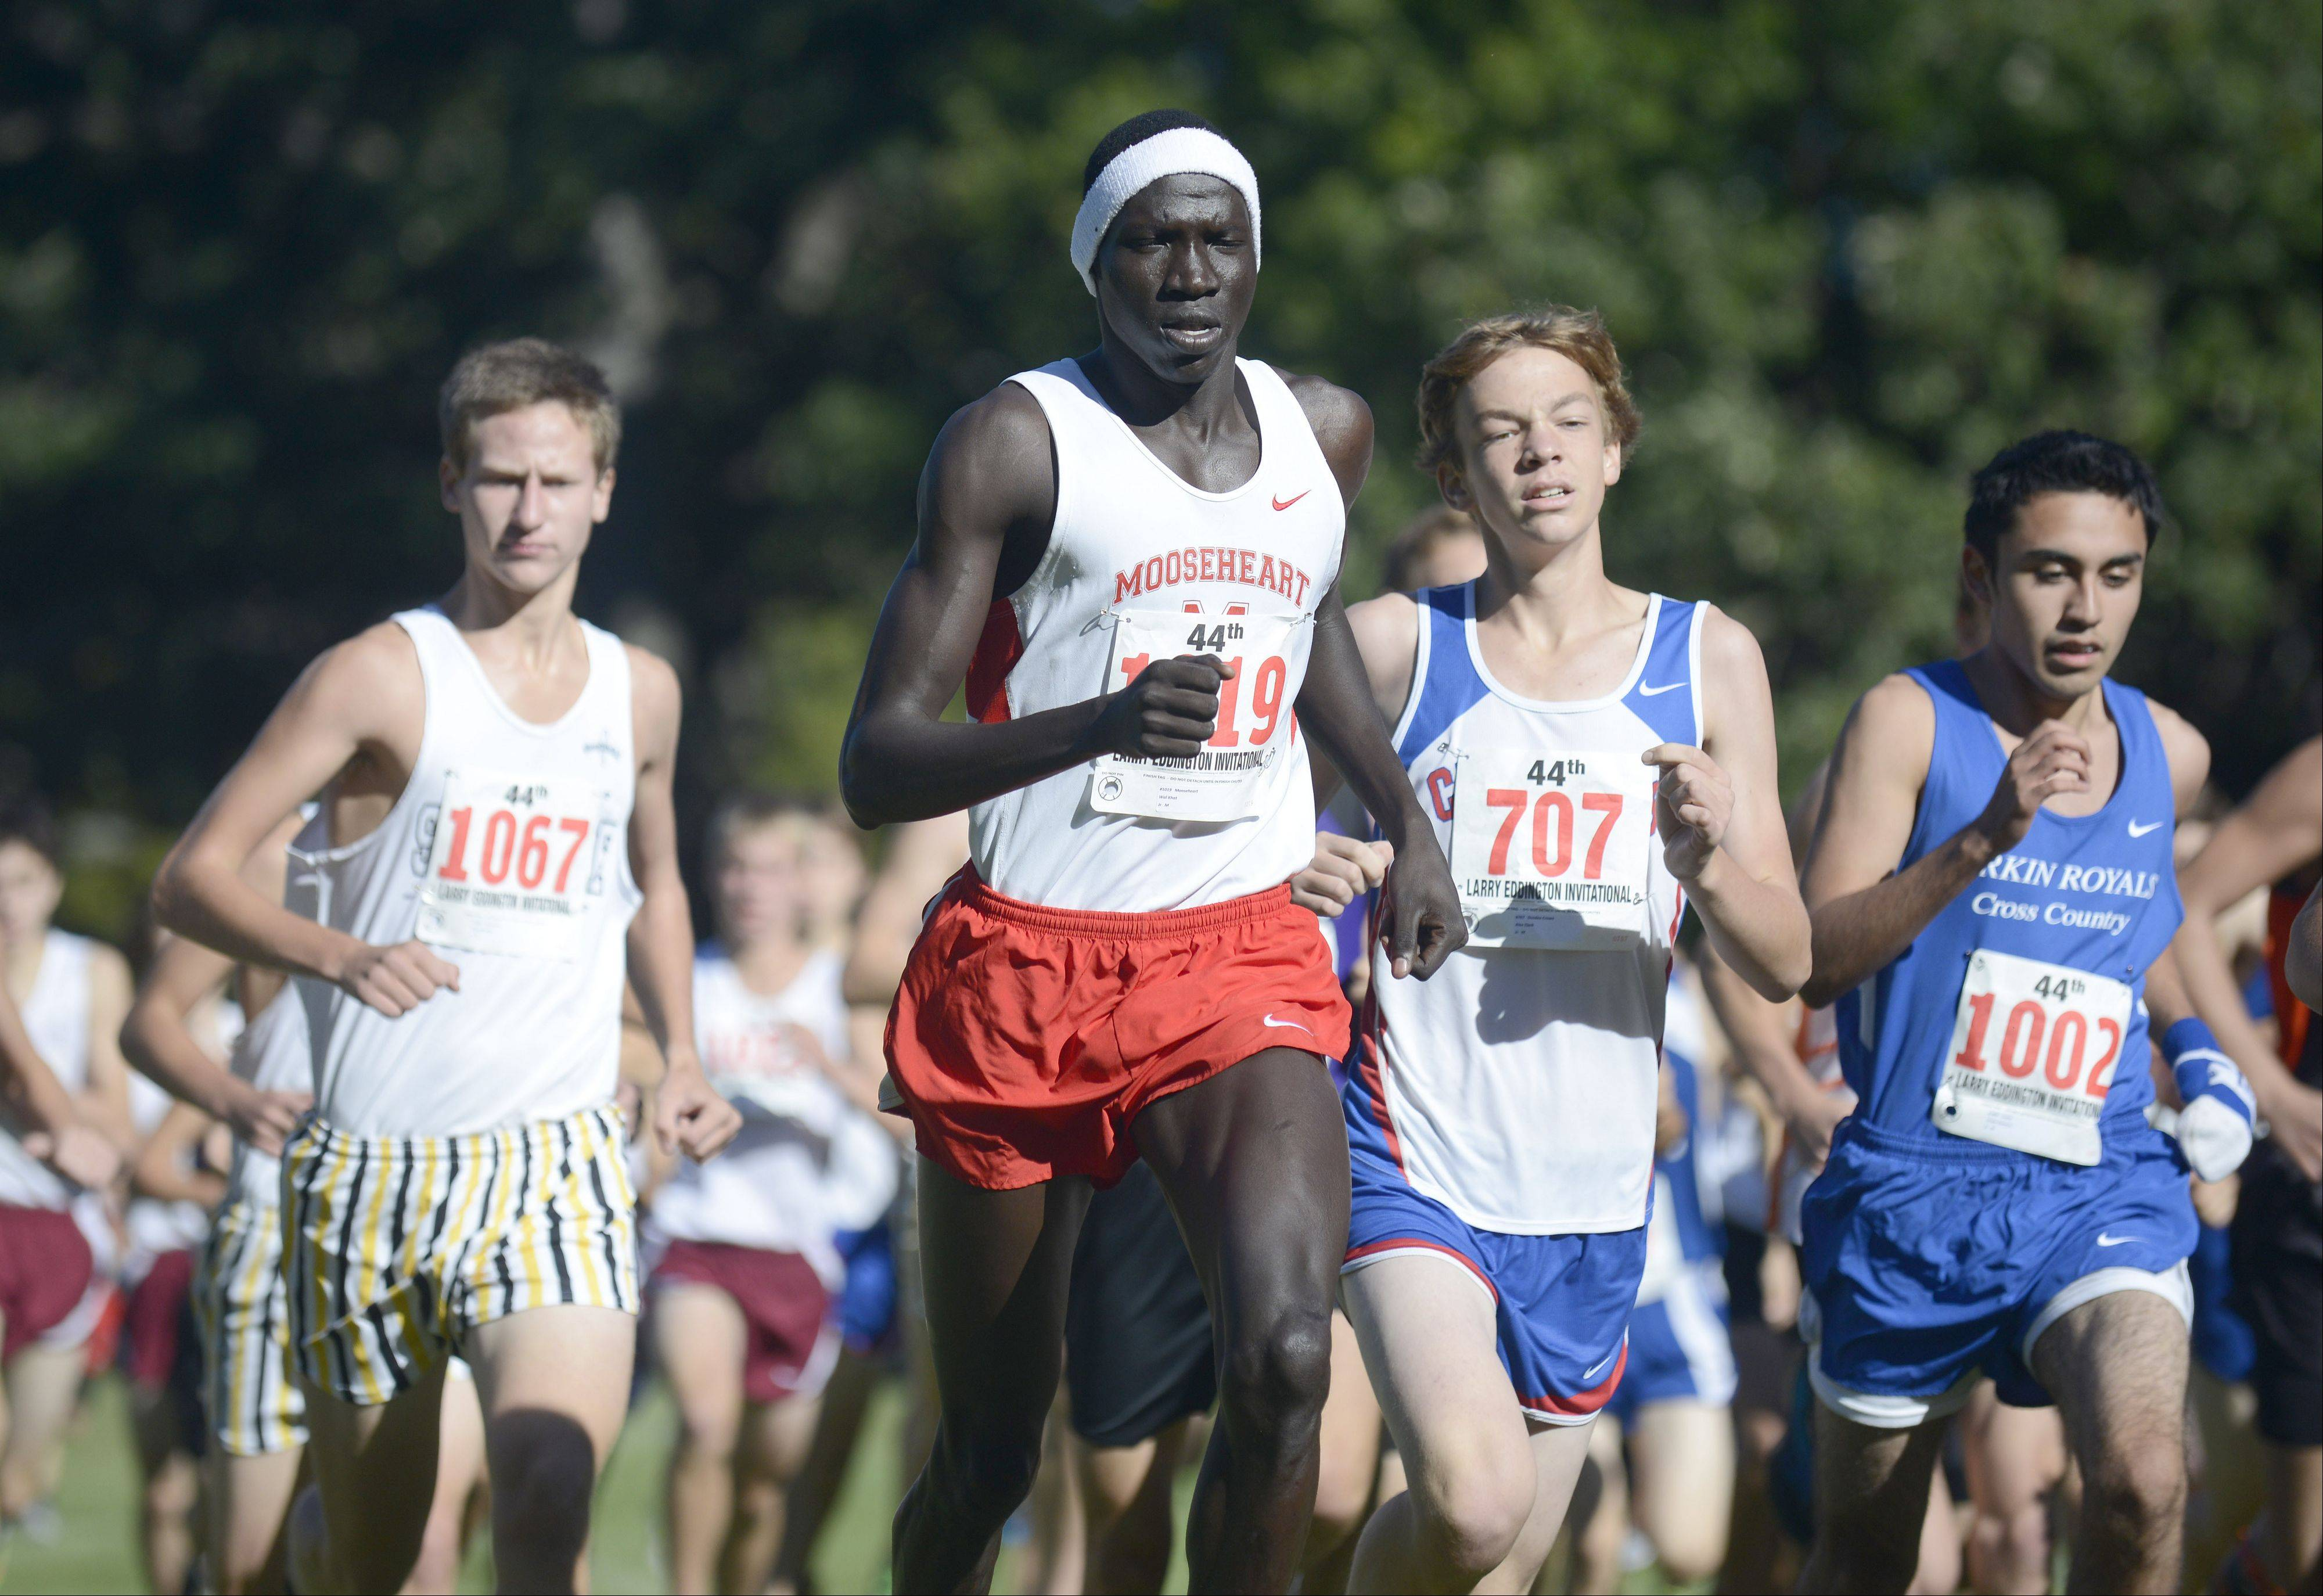 Mooseheart's Wal Khat takes off with the pack at the start of the boys varsity race at the Kaneland Invitational cross country meet in Elburn on Saturday, September 21.